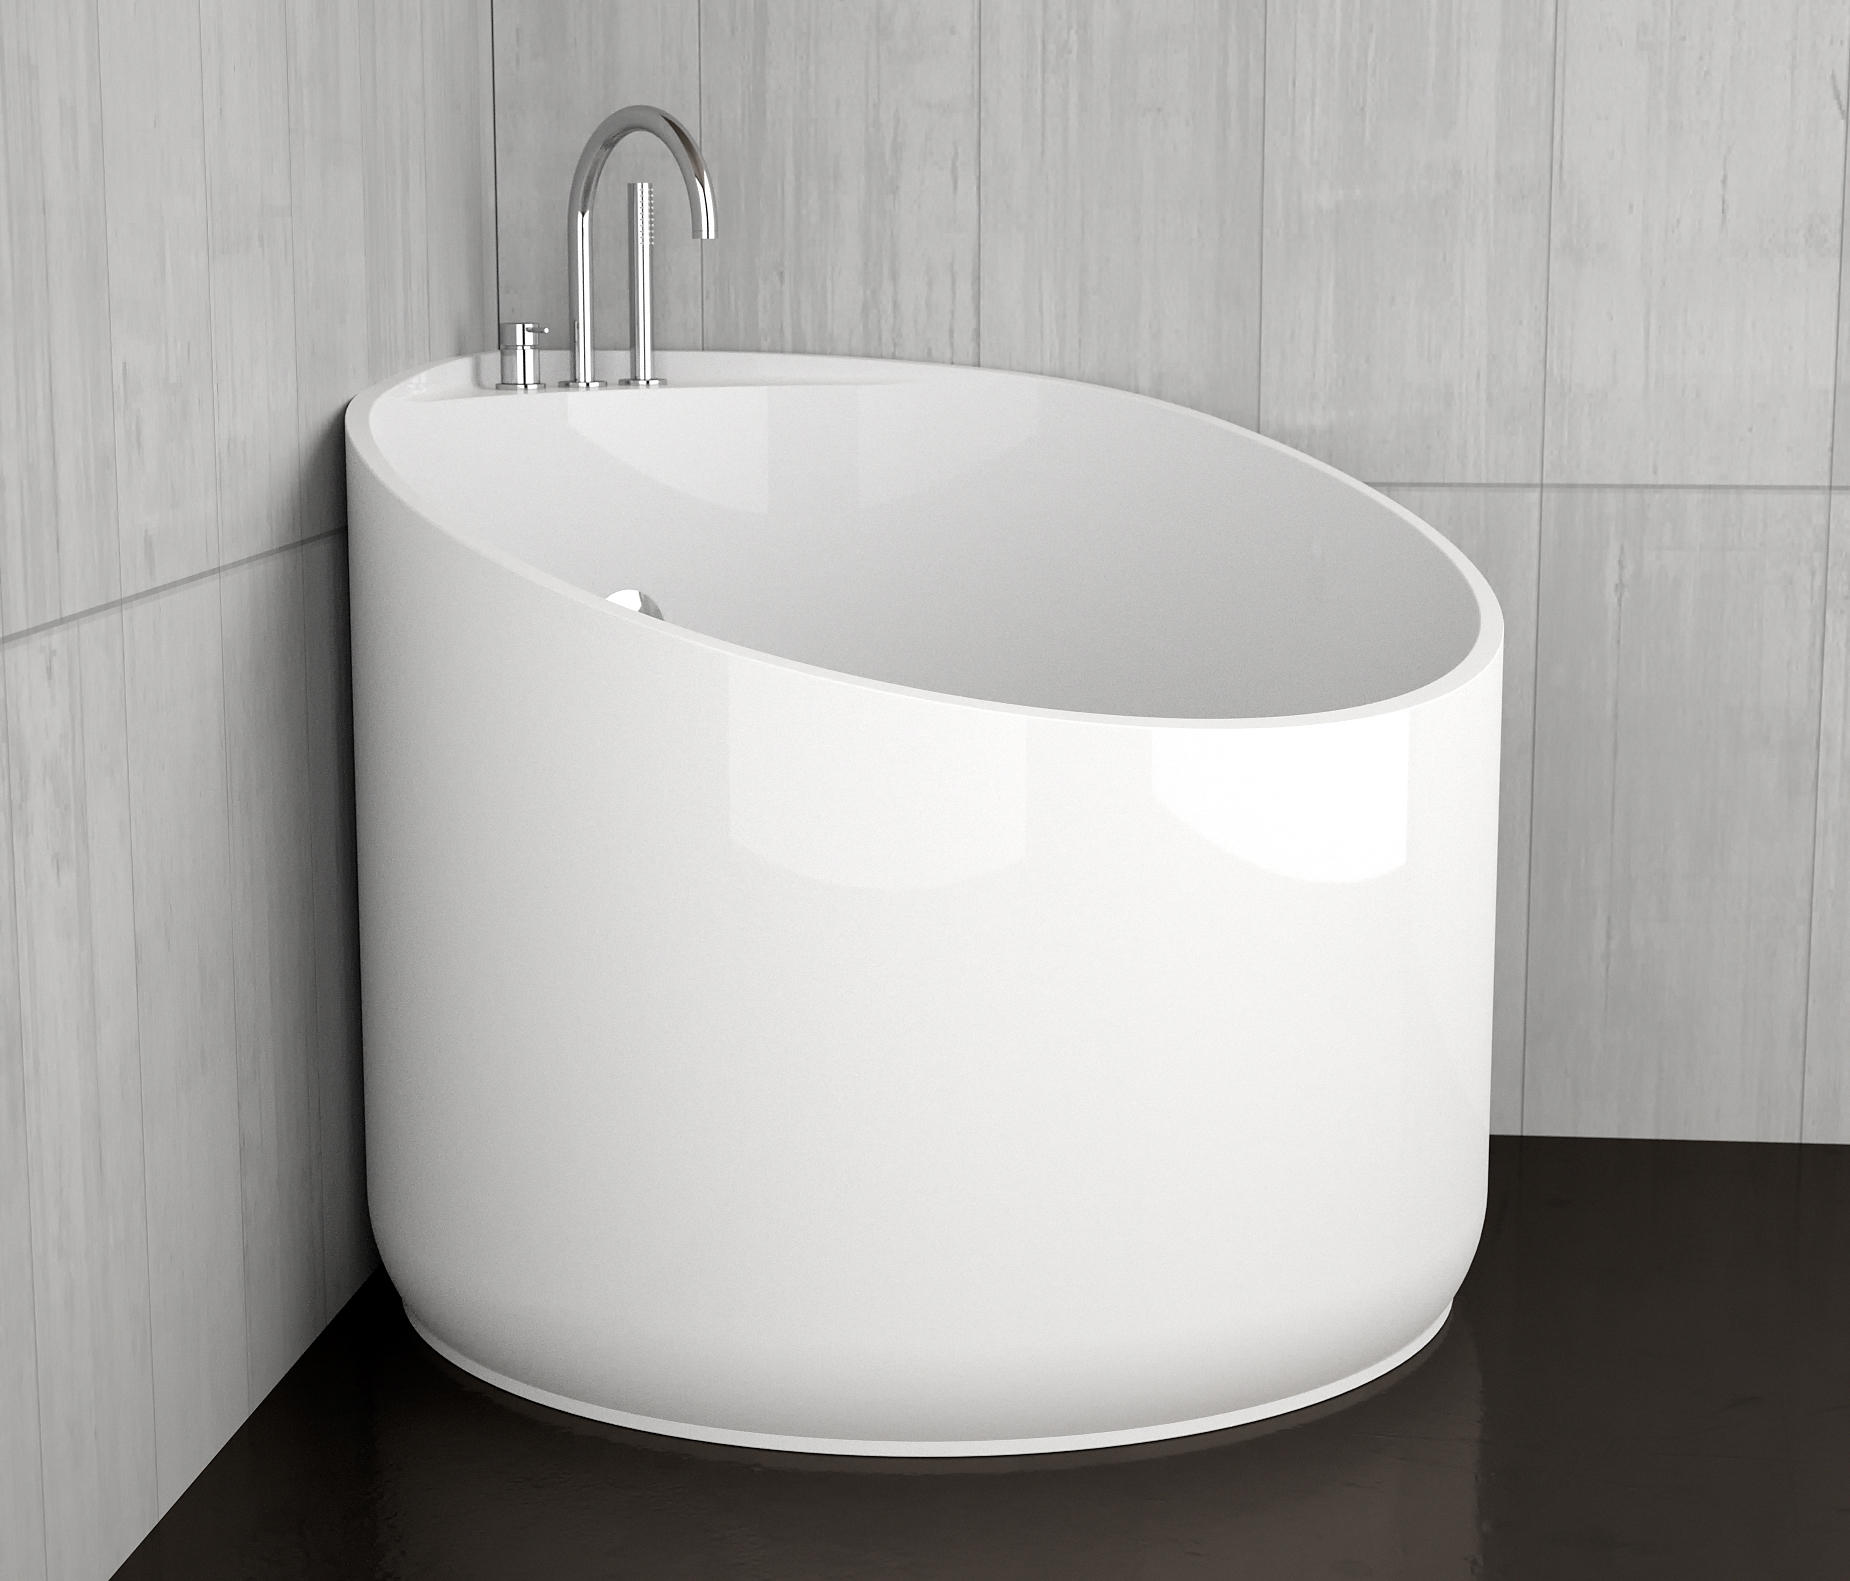 carver to faucets soaking tub product bathtub free kaskade standing with the rectangle mounted tubs bath freestanding